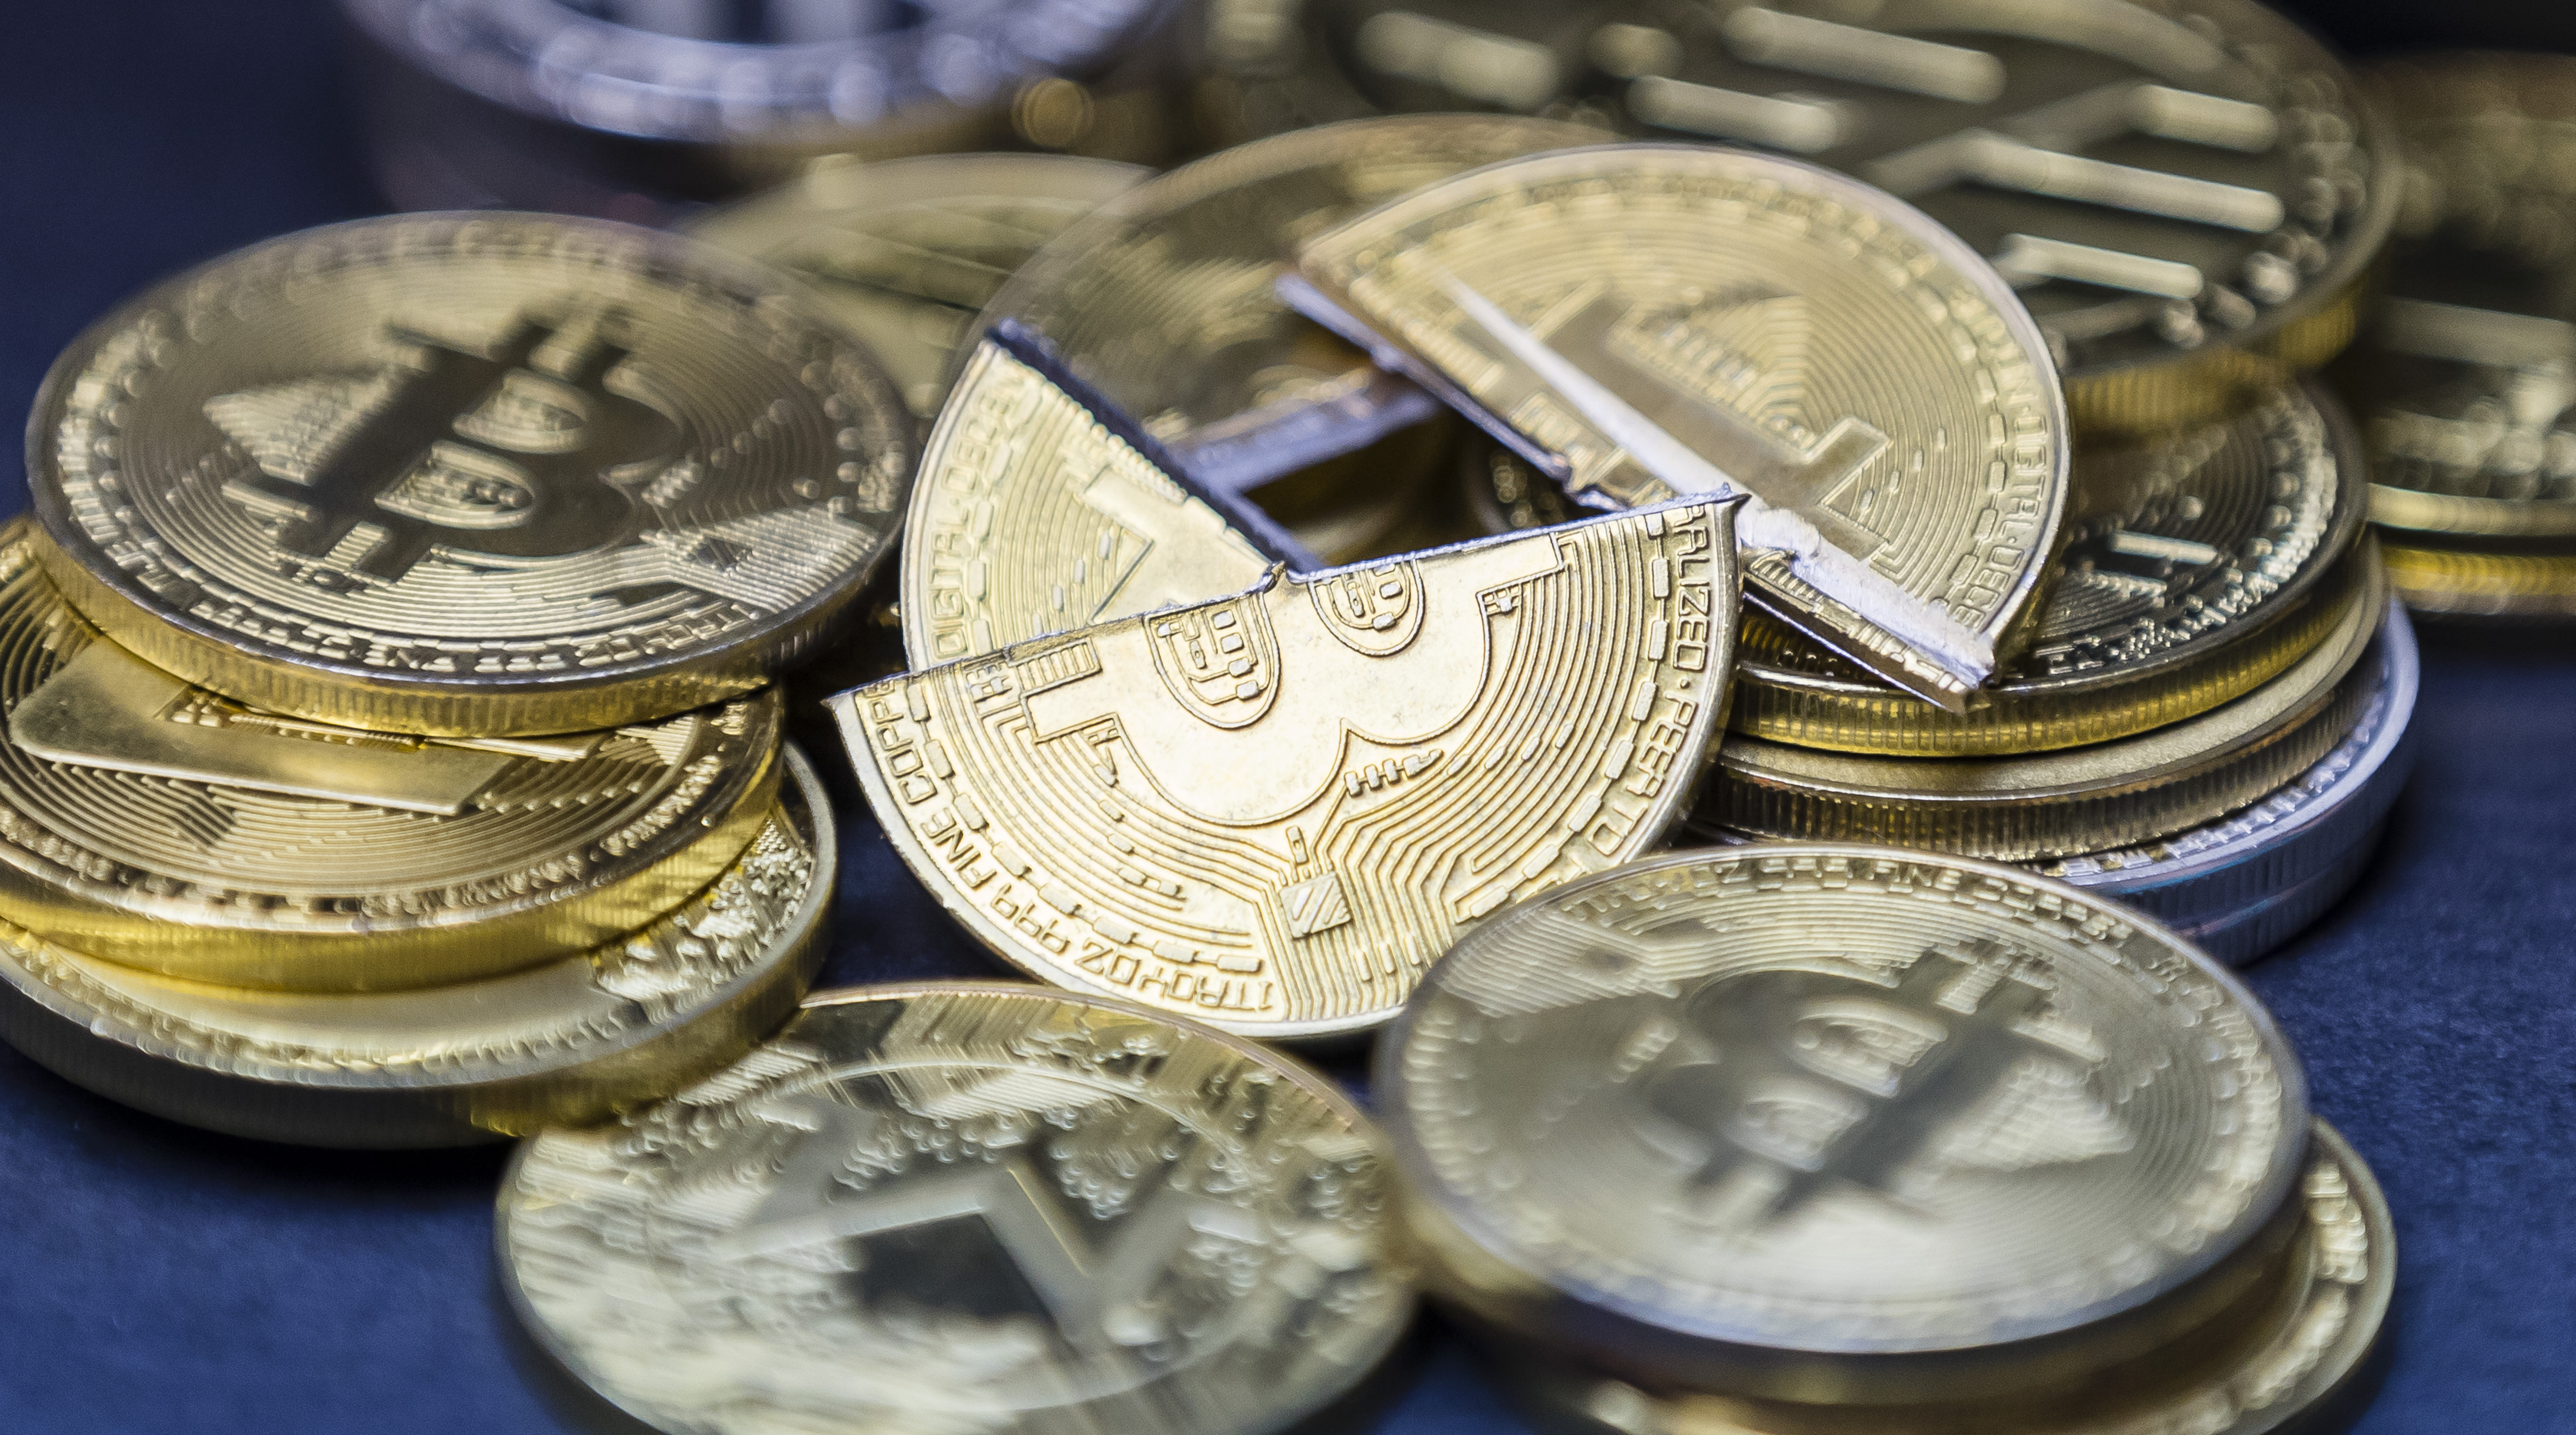 how many coin do we need in our cryptocurrency